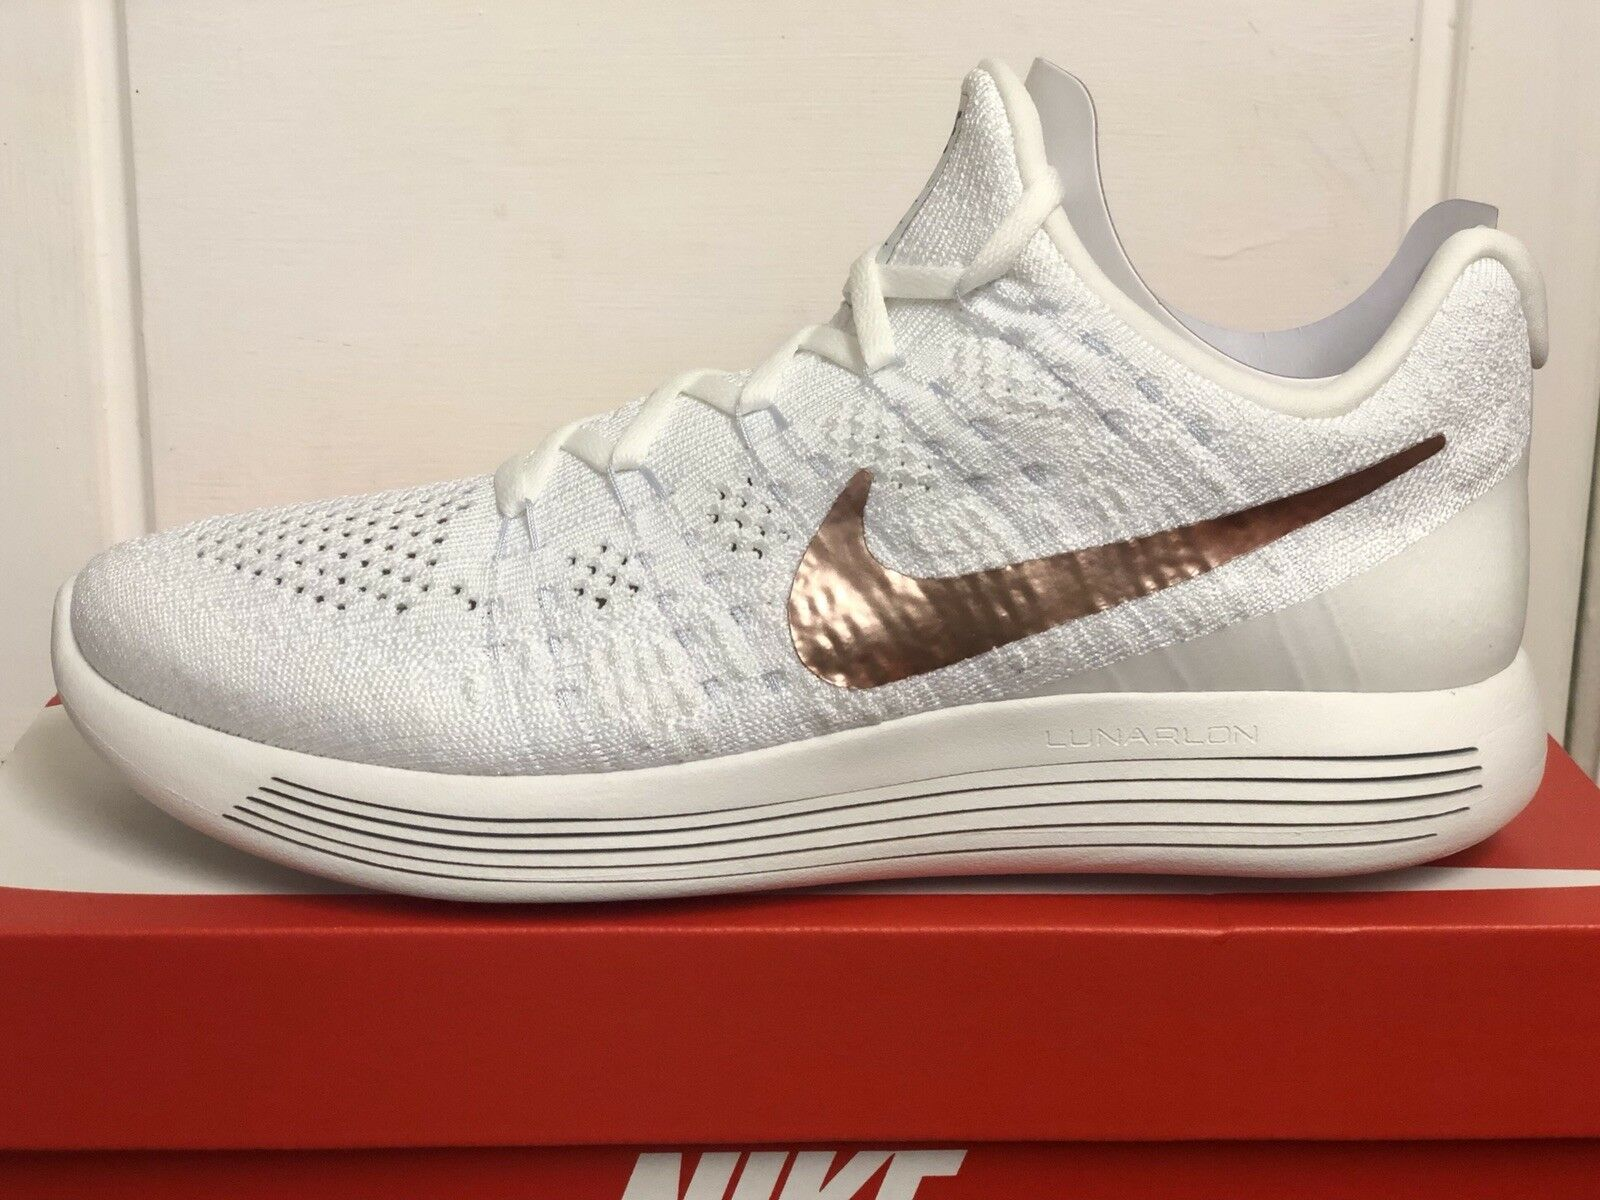 NIKE LUNAREPIC LOW FLYKNIT 2 X-PLORE TRAINERS SNEAKERS SHOES UK 8,5 EUR 43